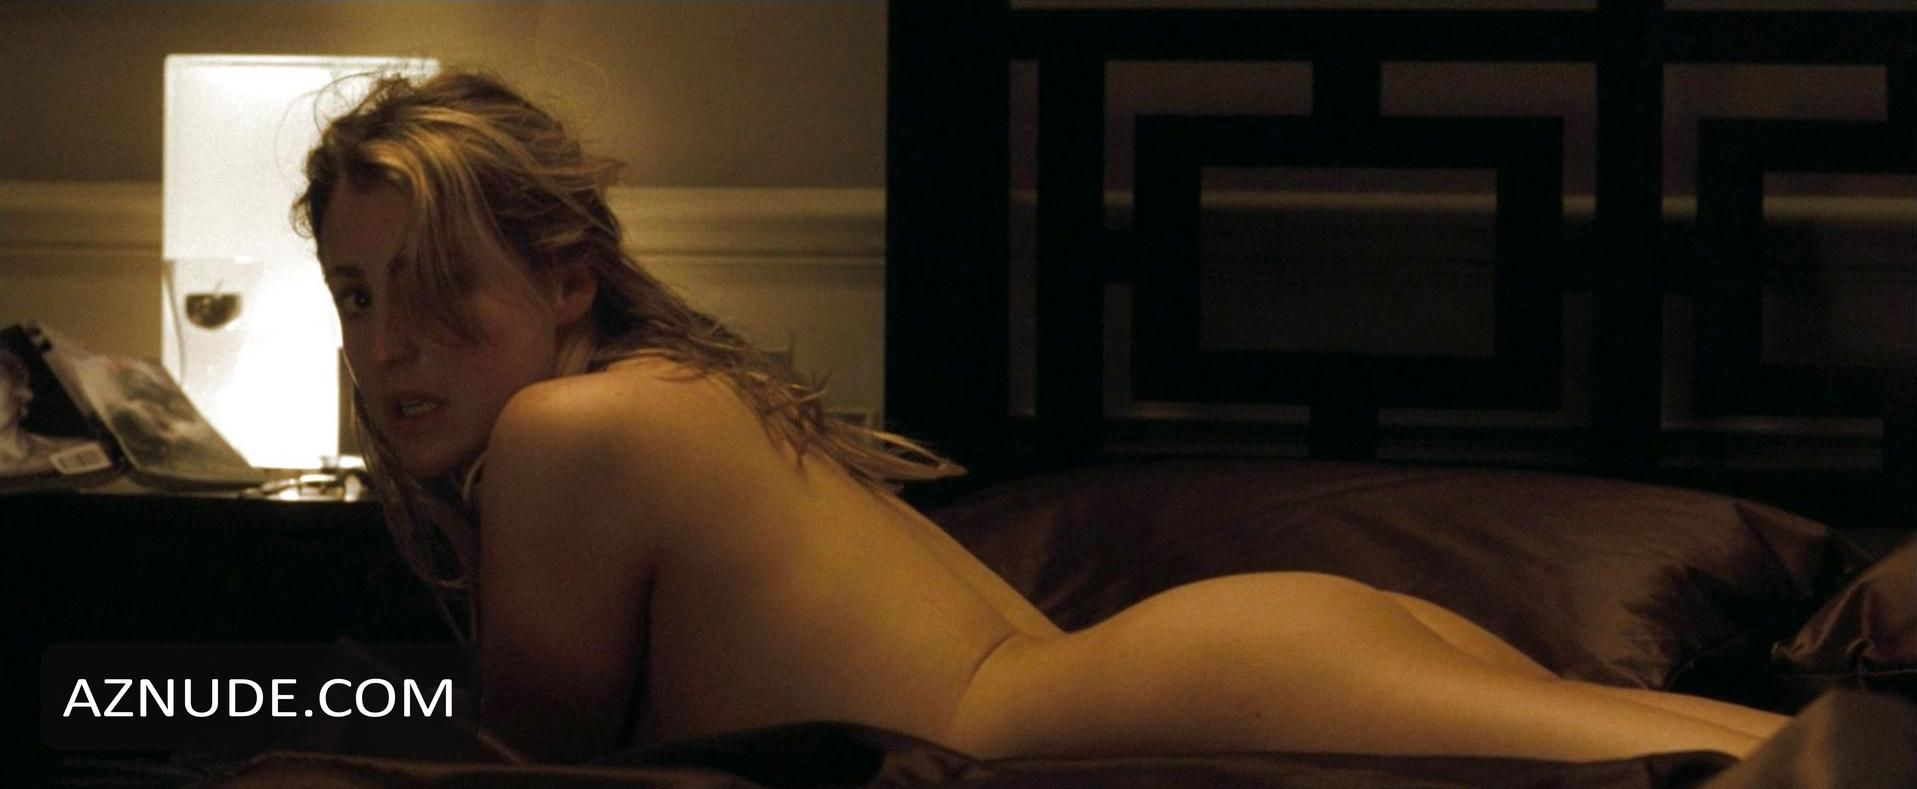 Basic instinct 2 sex scene video